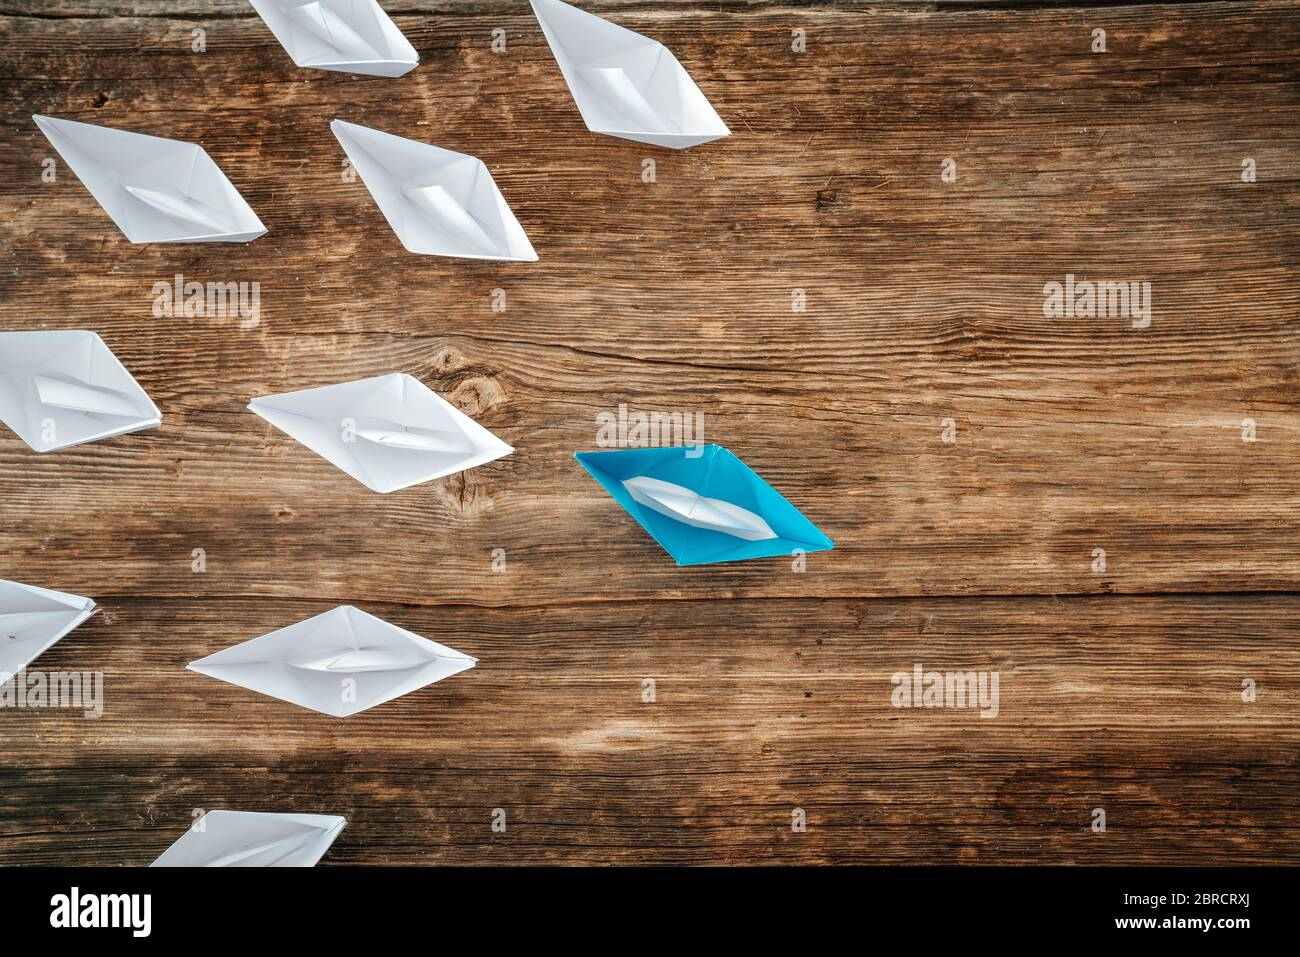 paper boats on aline on the wooden background, concept teamwork, leadership and management Stock Photo